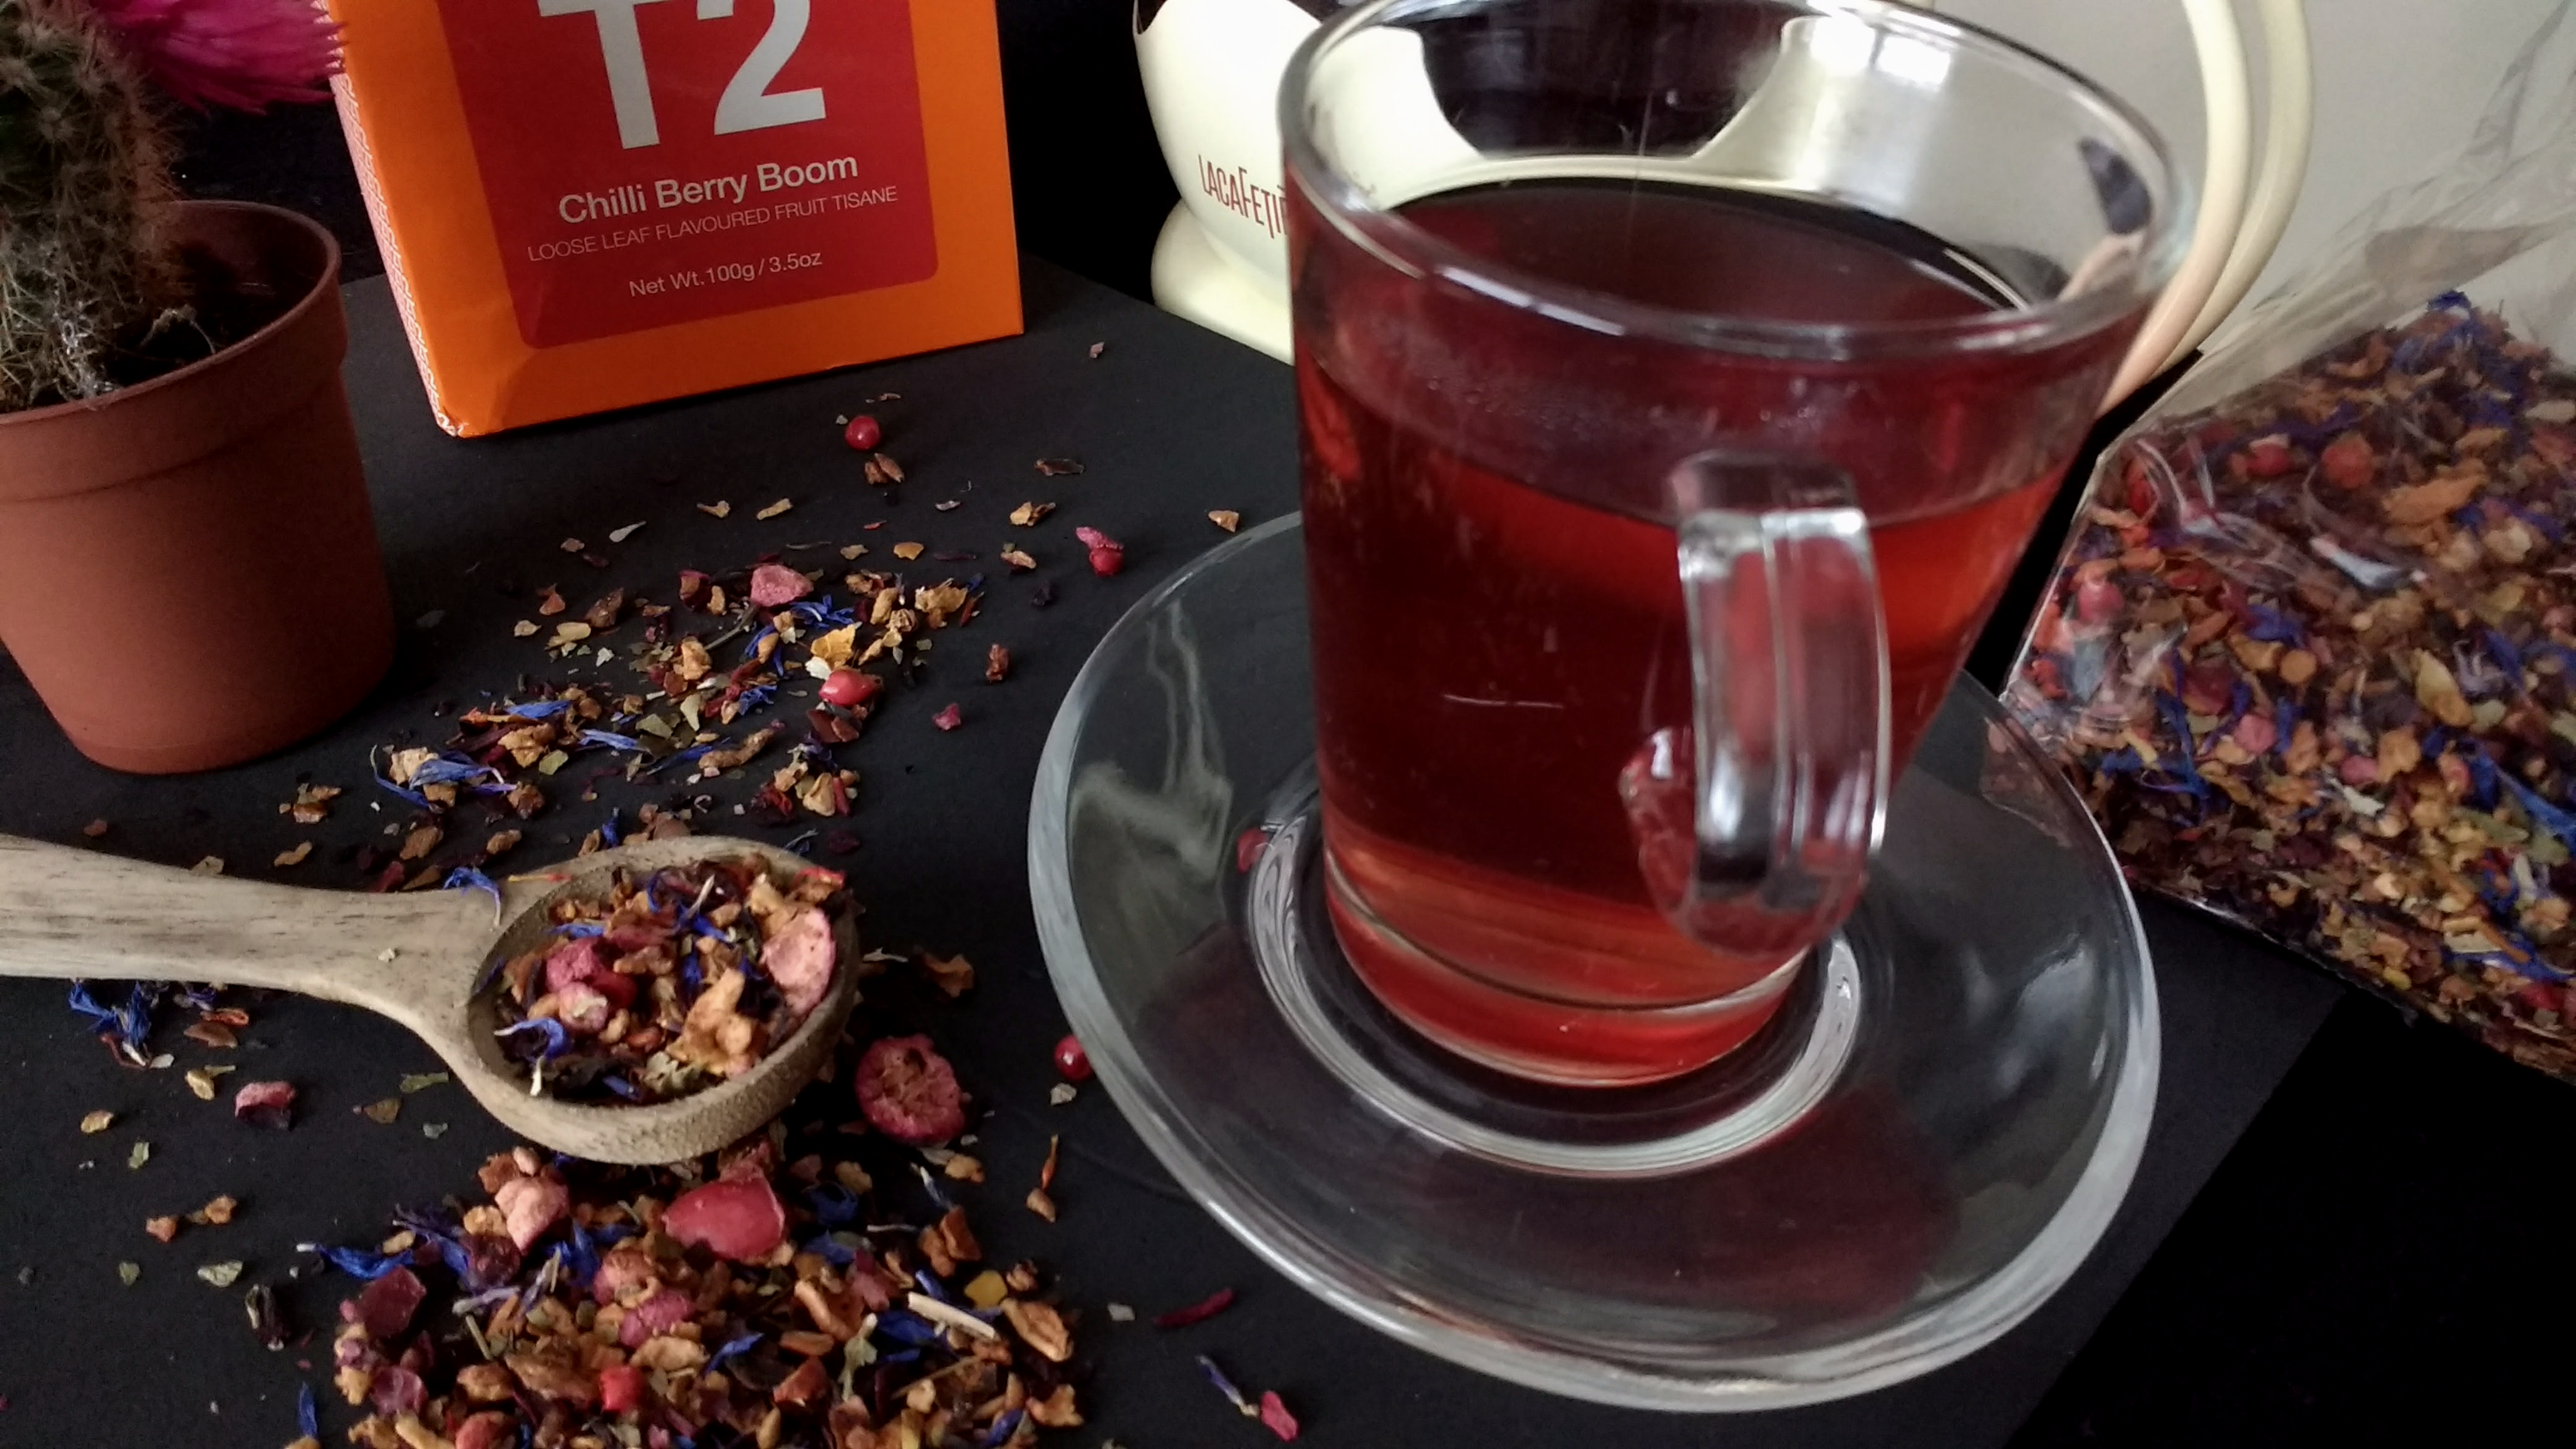 T2-Tea-Chilli-Berry-Boom-Loose-Leaf-Herbal-Tea